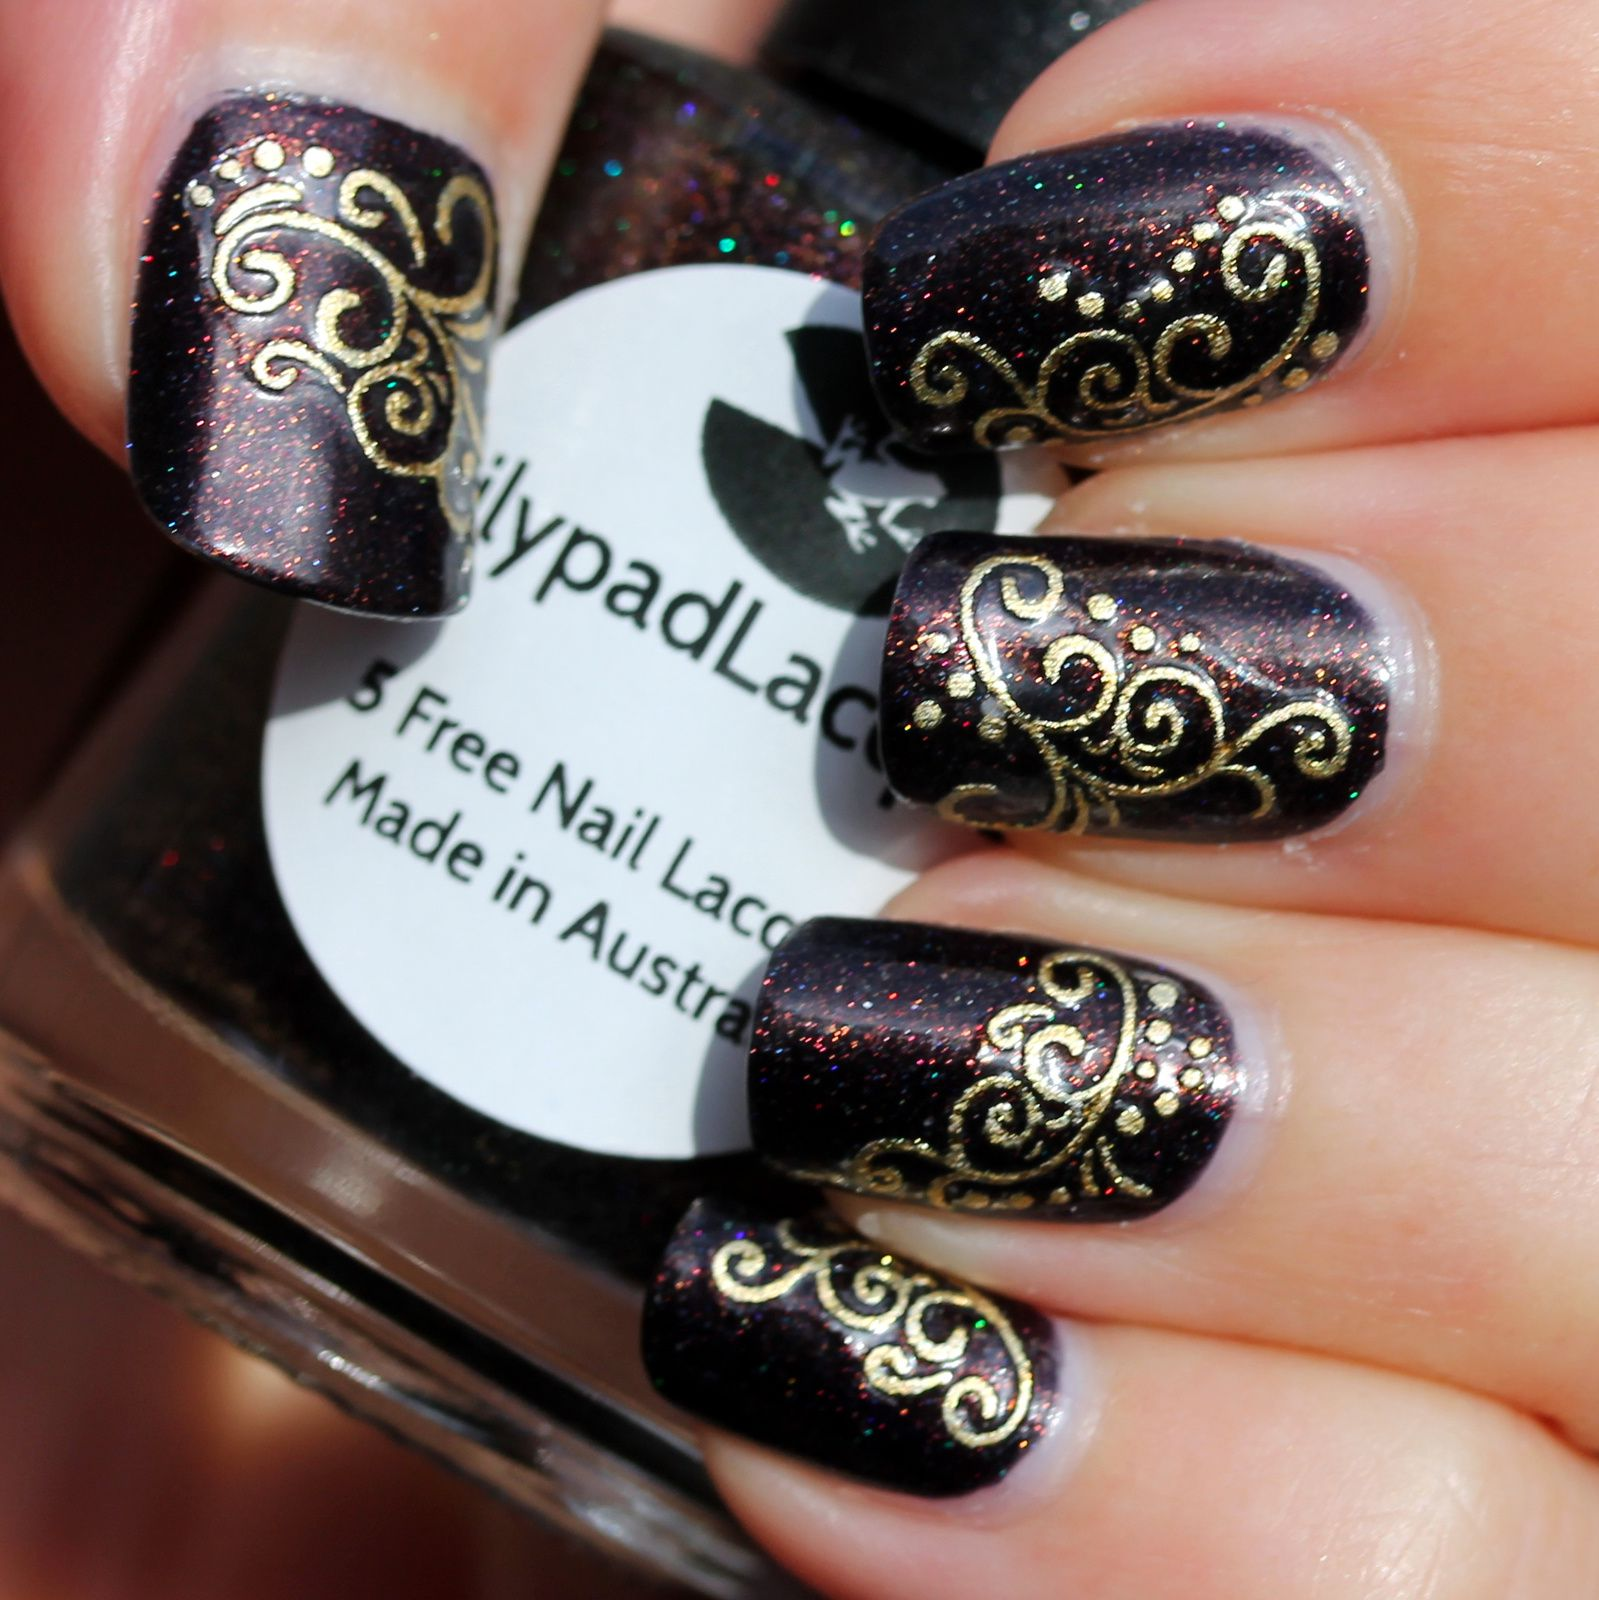 Duri Rejuvacote / Lilypad Lacquer Bronze Goddess / Golden Lace Stickers / HK Girl Top Coat